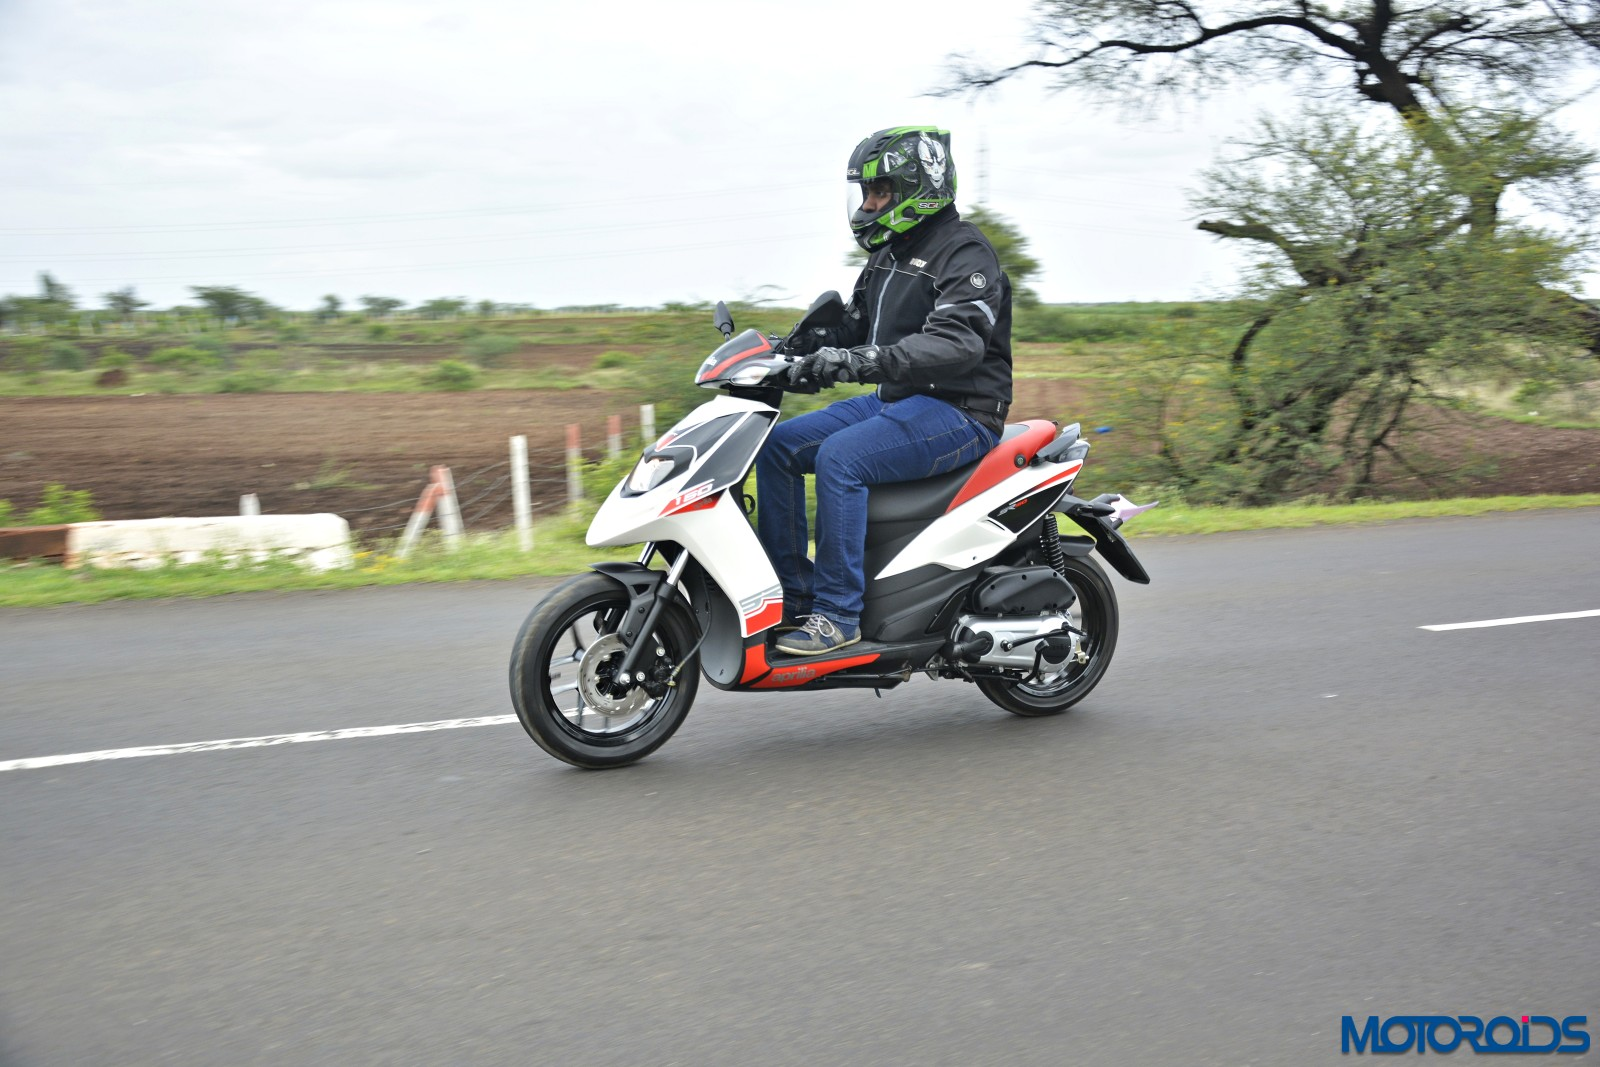 Aprilia SR 150 Review - Action Shots (10)